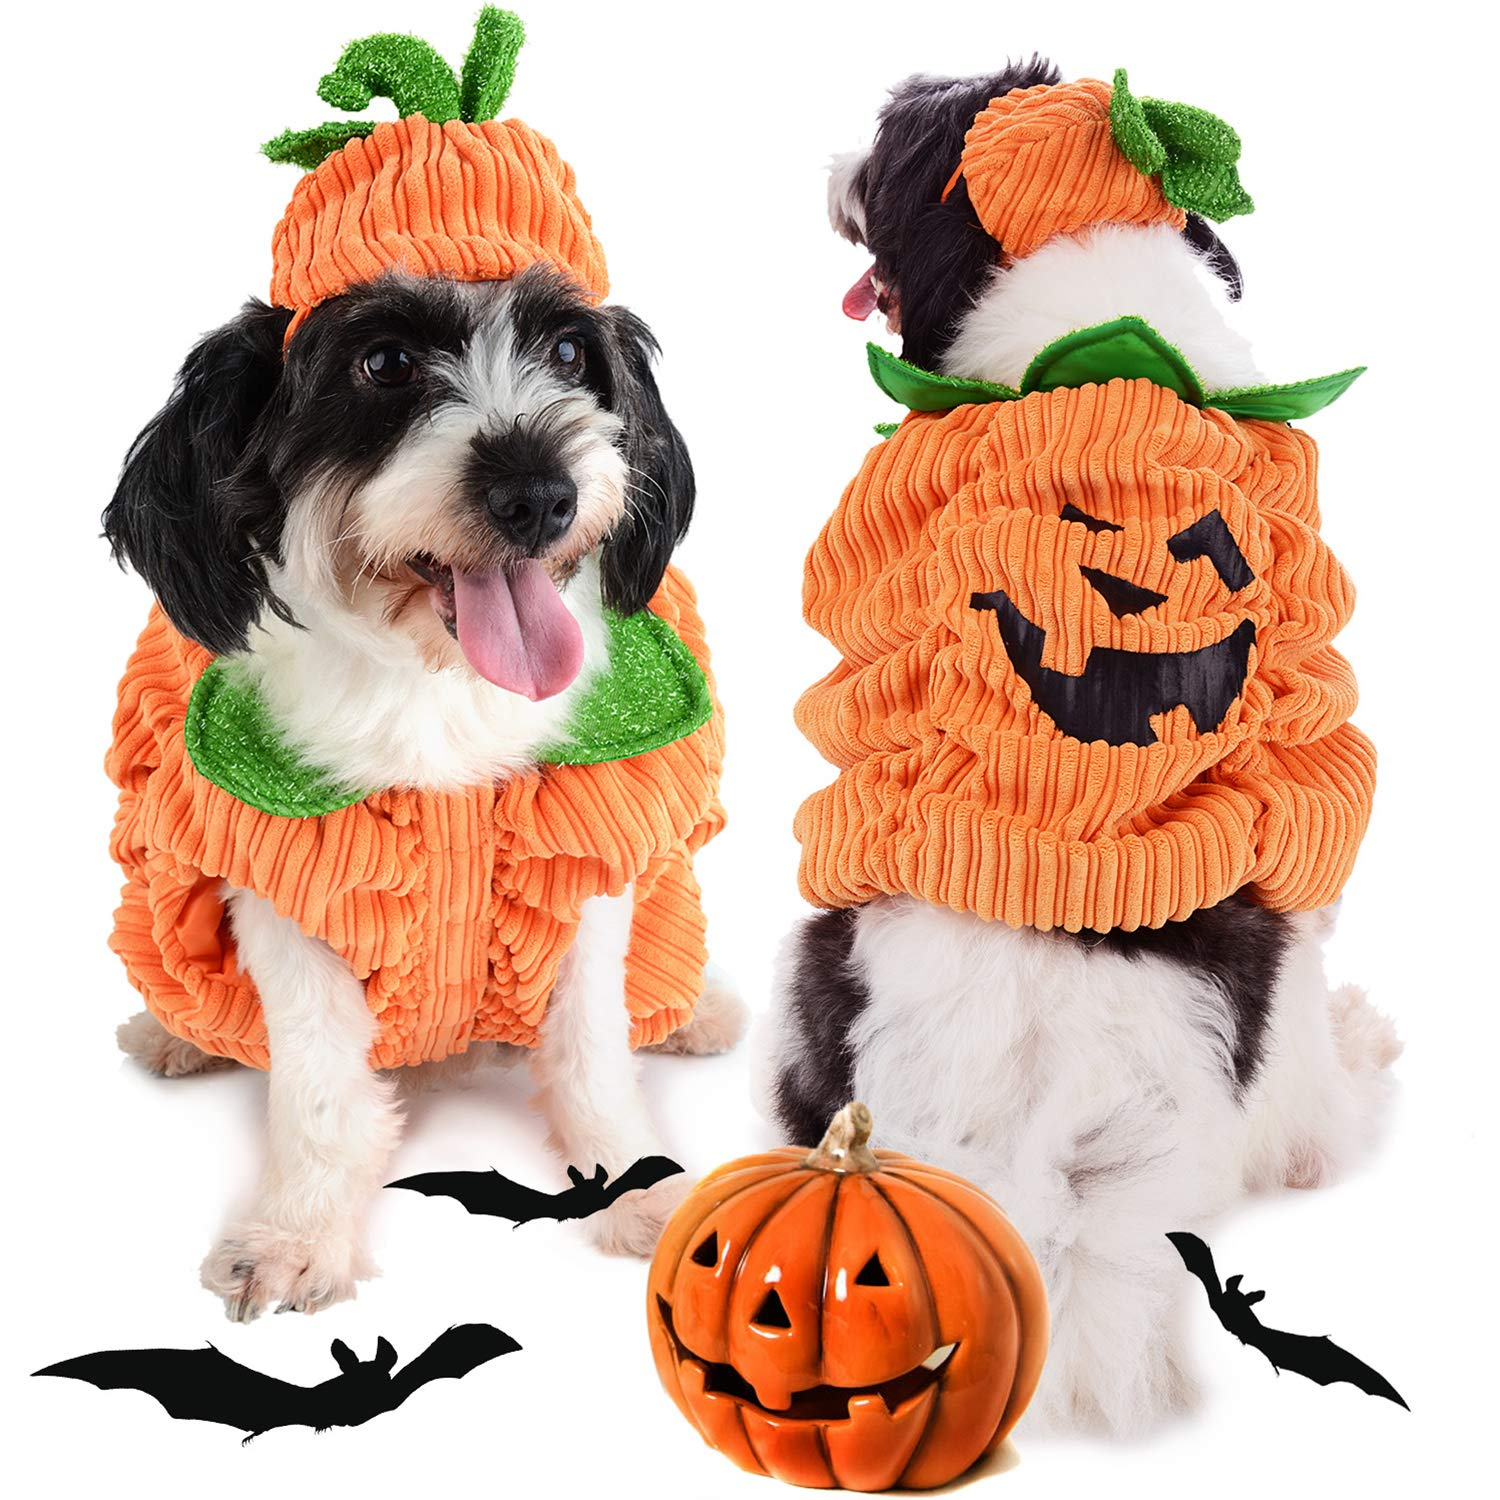 Legendog Dog Halloween Costume,Dog Halloween Costume with Pumpkin Hat Design Creative Funny Halloween Dog Outfits for Small Medium Dog